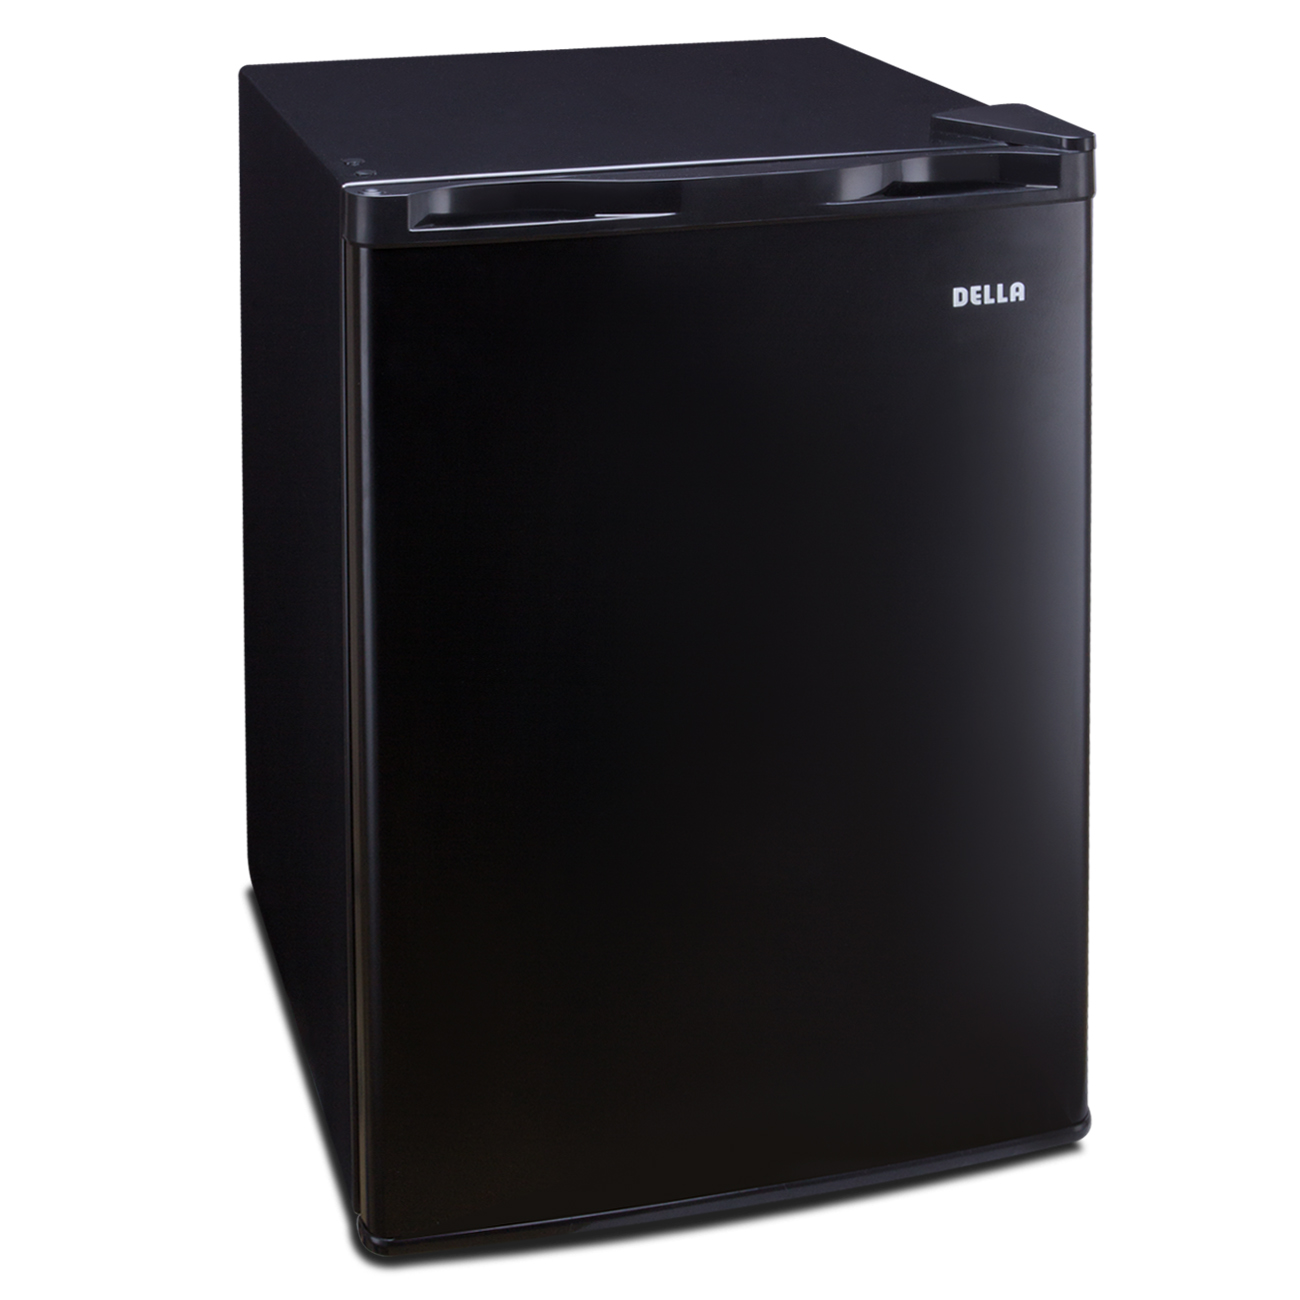 Della 2.6 cu ft Mini Refrigerator Fridge Freezer Compact Cooler Dorm, Black